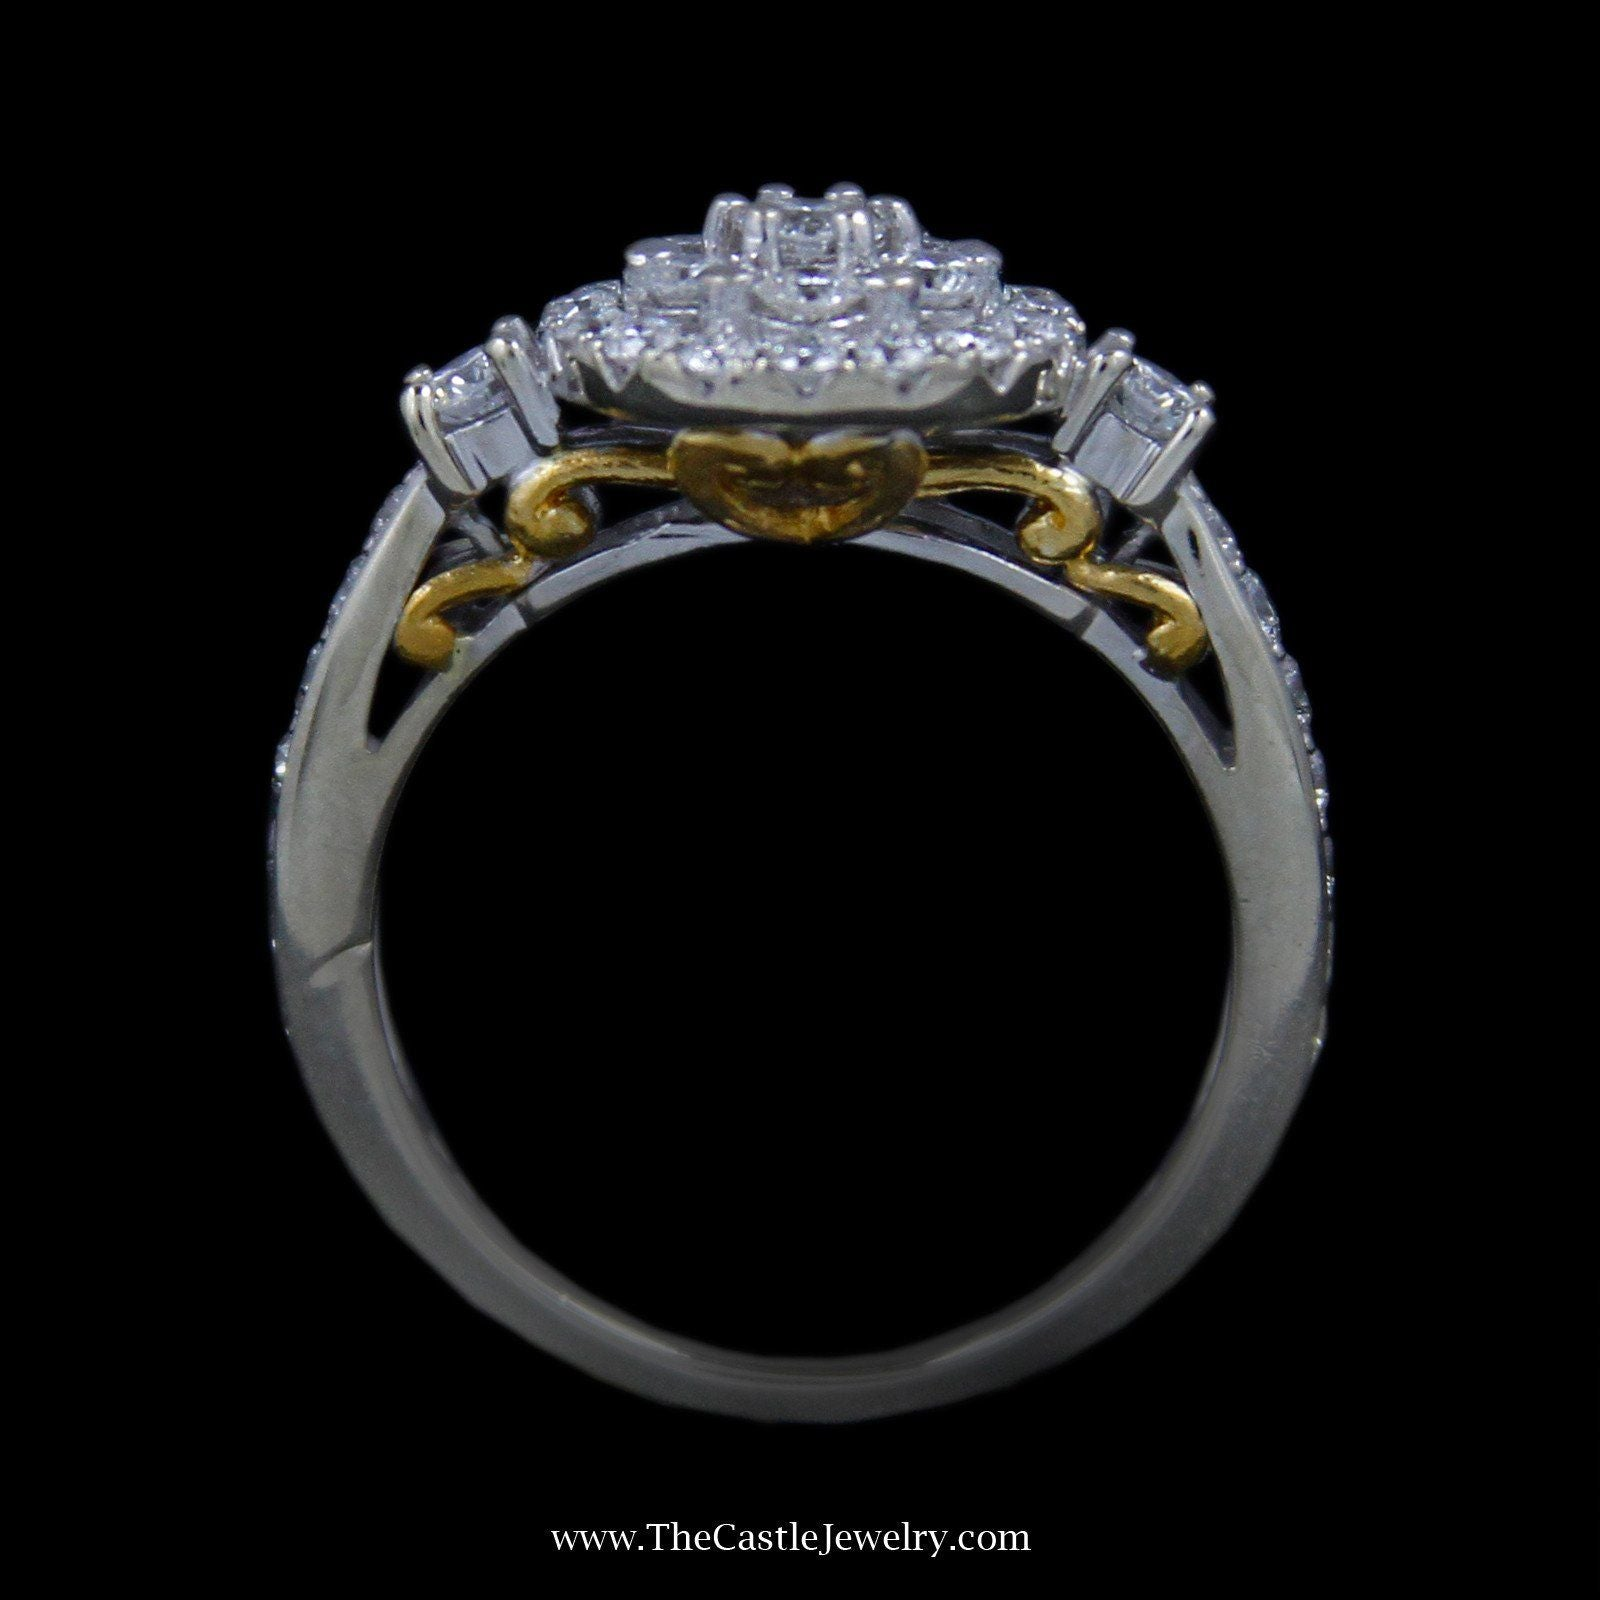 Gorgeous Round Diamond Cluster Ring w/ Round Diamonds in 14k White Gold w/ 24k Yellow Gold-1